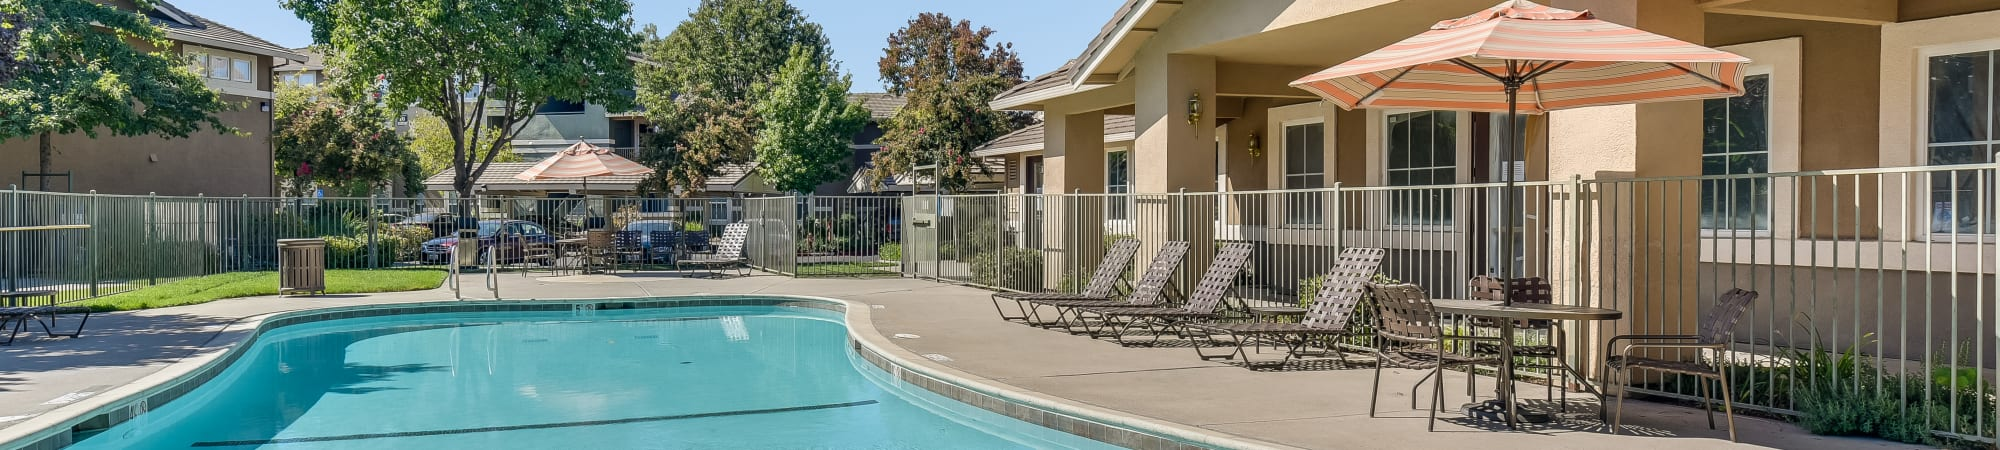 Elegant outdoor area with lawn chairs and pools at Natomas Park Apartments in Sacramento, California